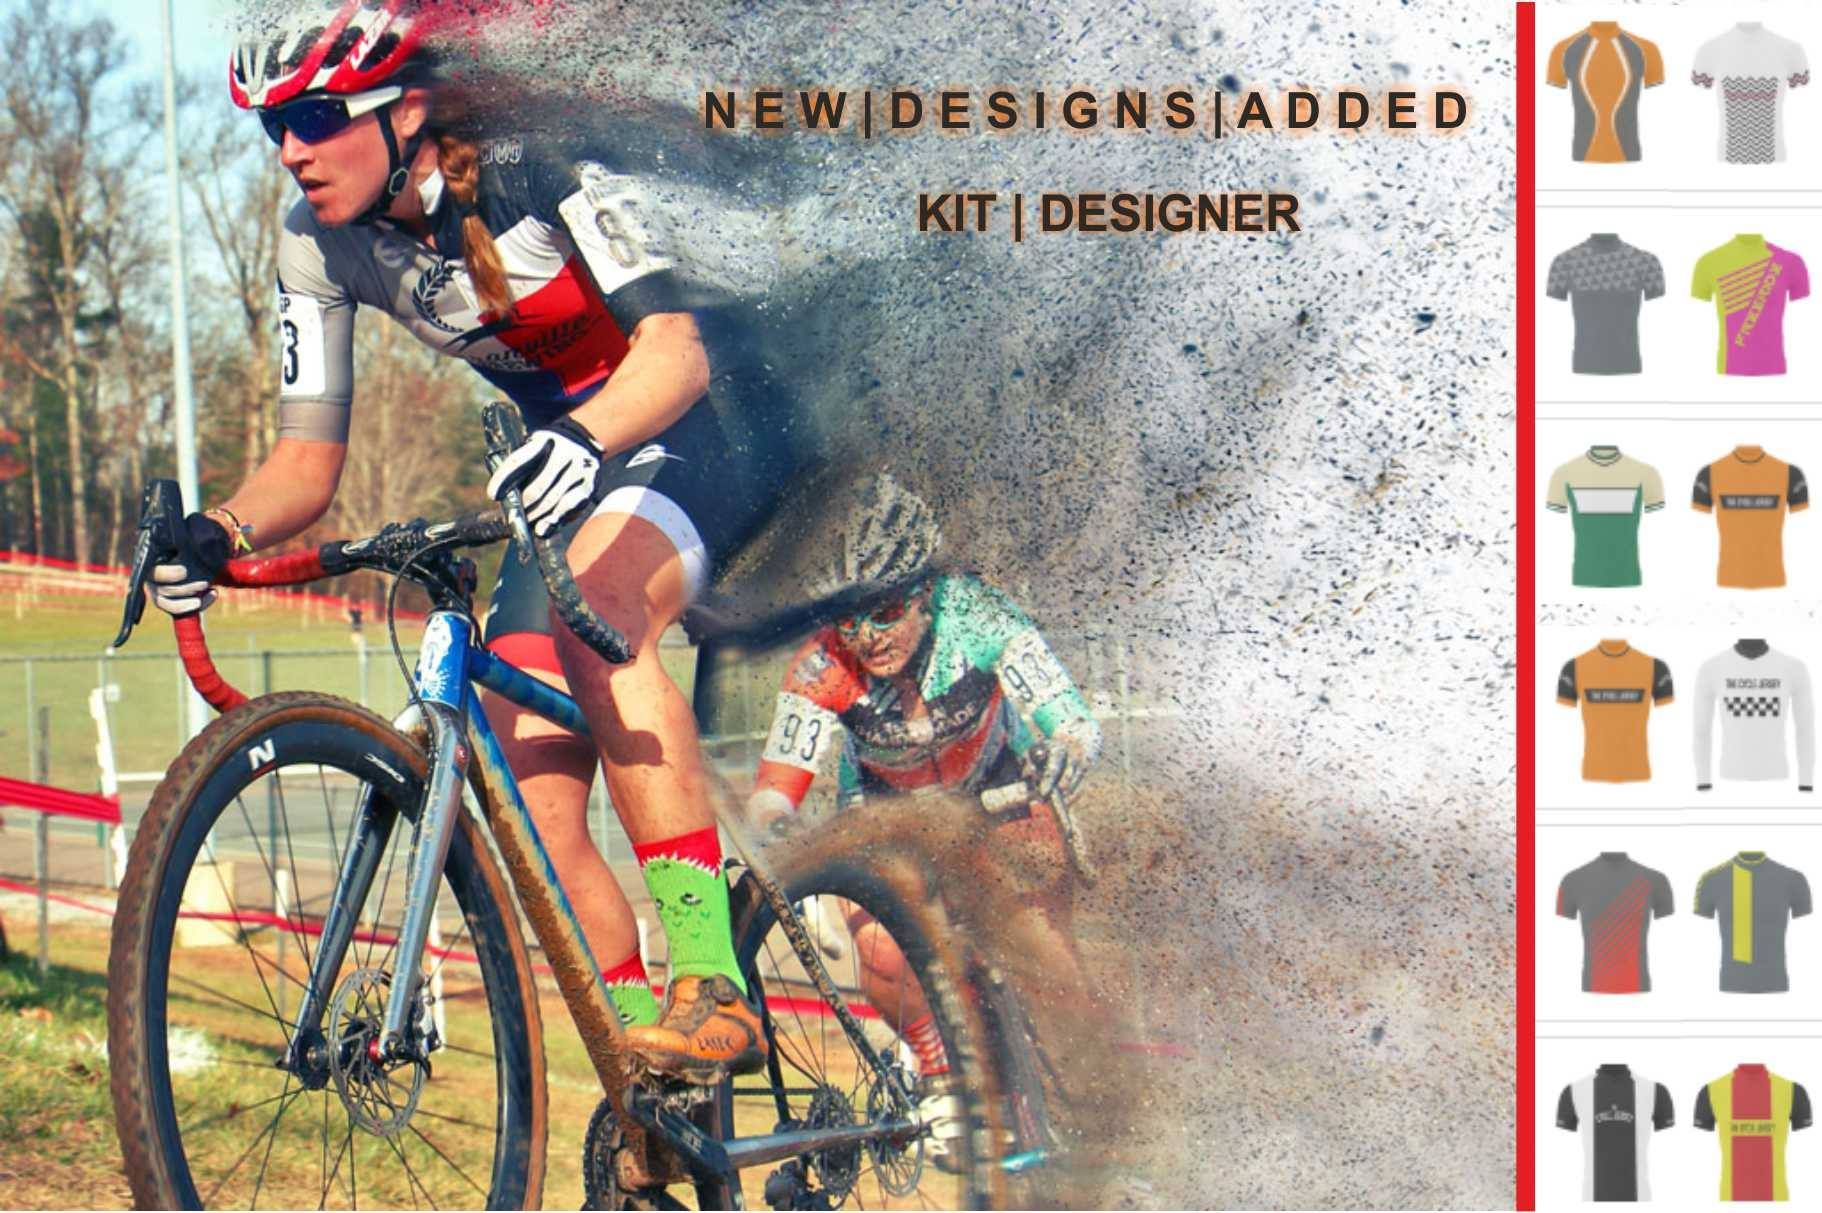 Fancy some new kit  Design your own in under 10 clicks! http   bit ... 580f33996